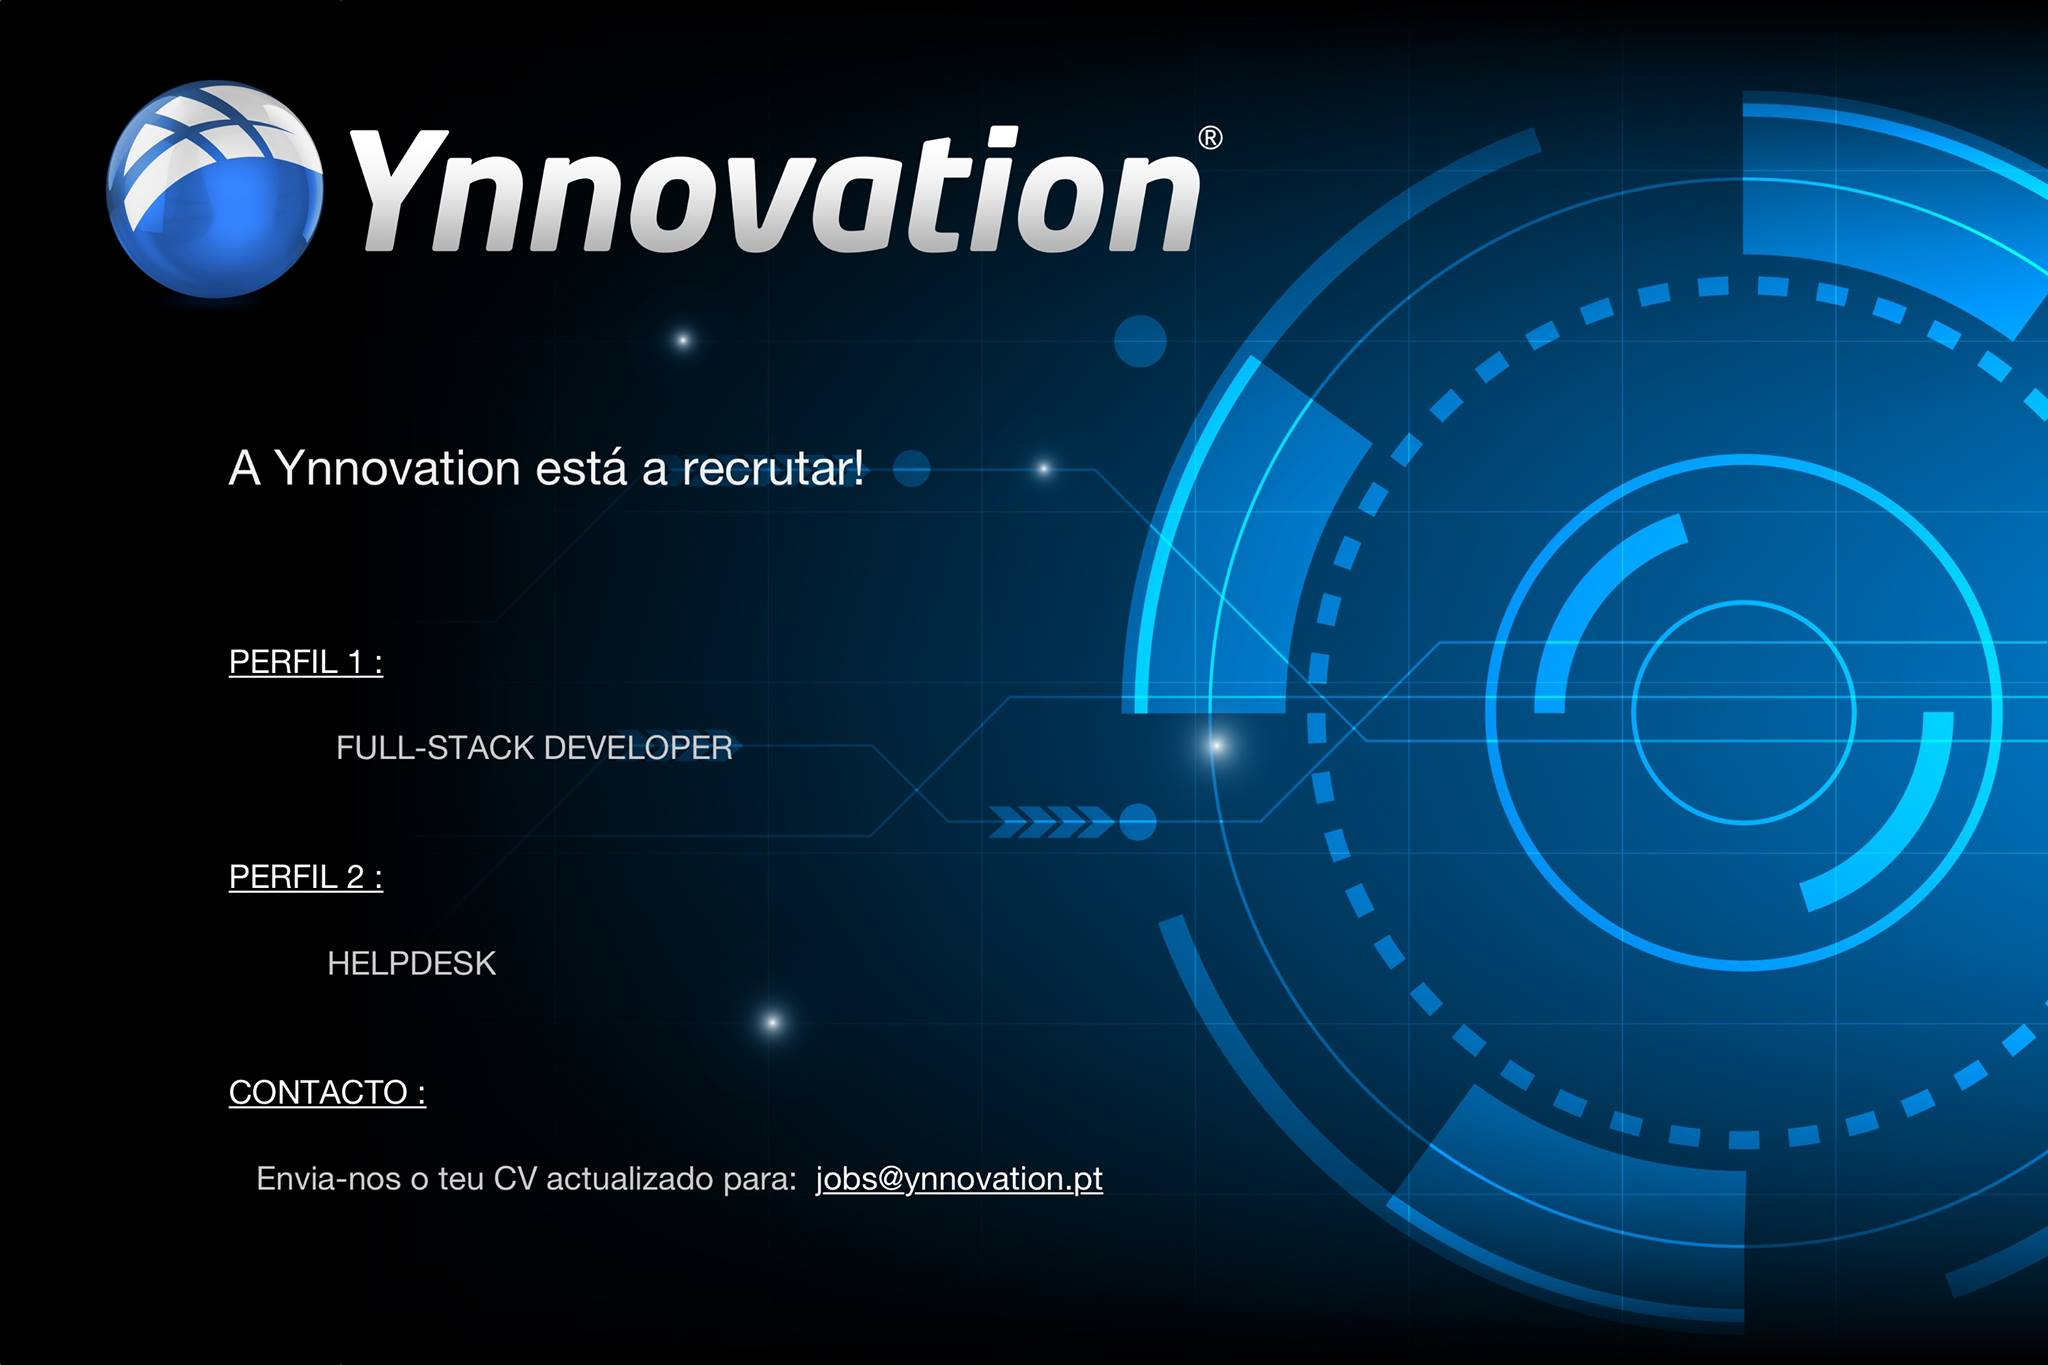 Ynnovation